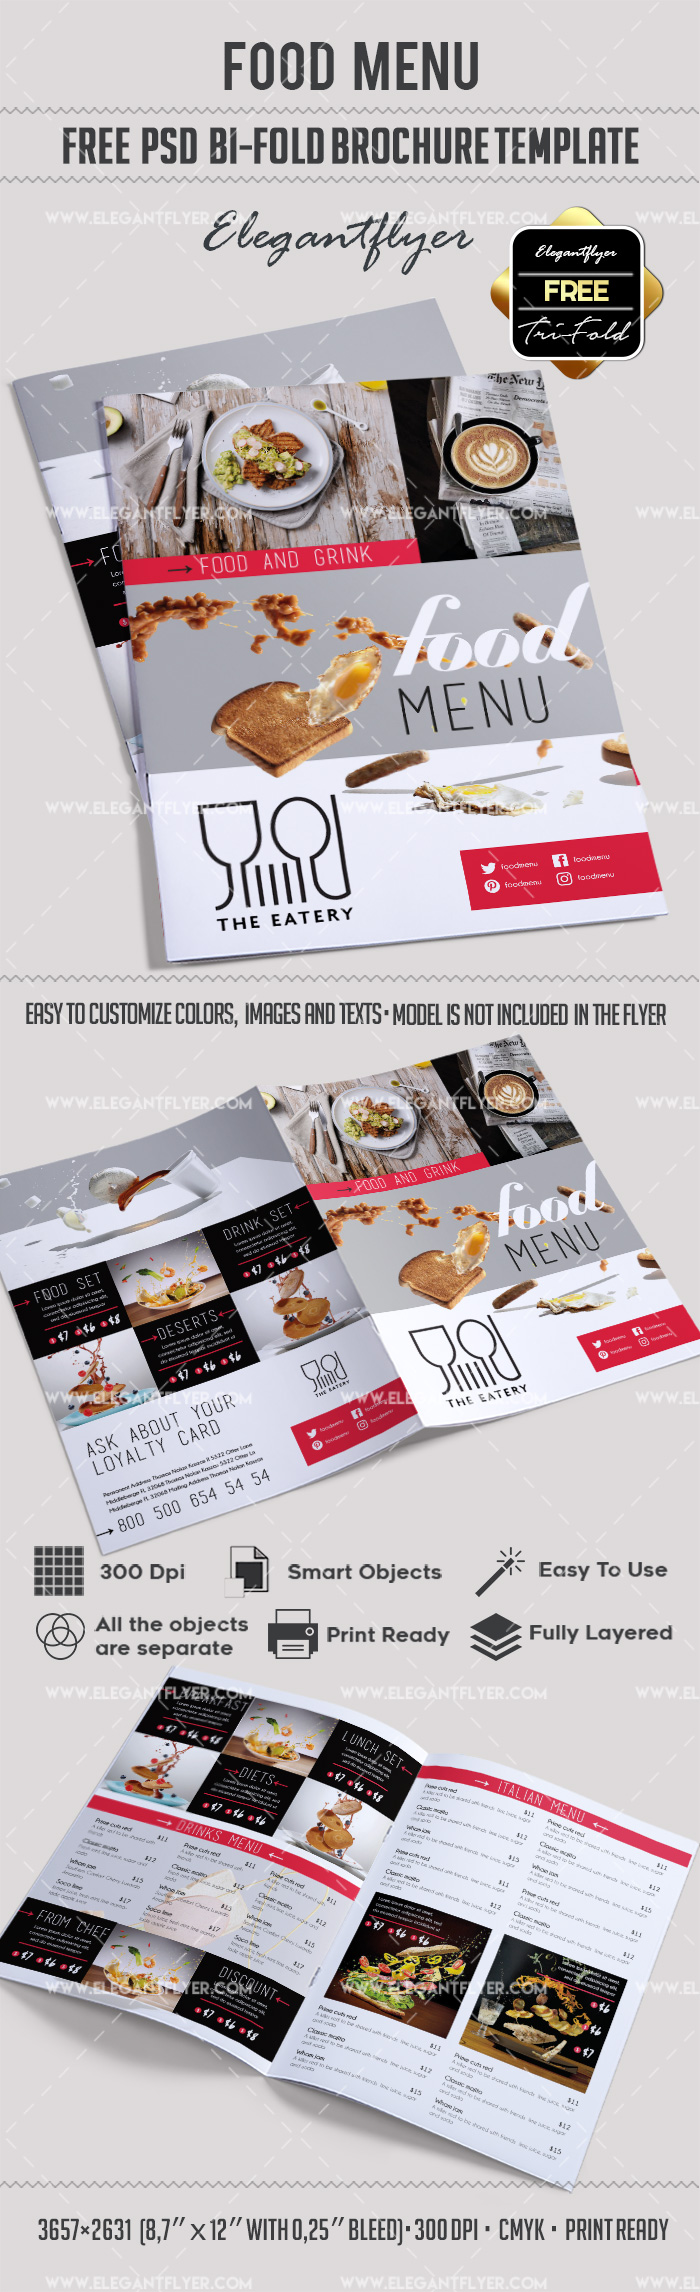 Restaurant Brochure Template | Free Food Menu Restaurant Brochure Template In Psd By Elegantflyer